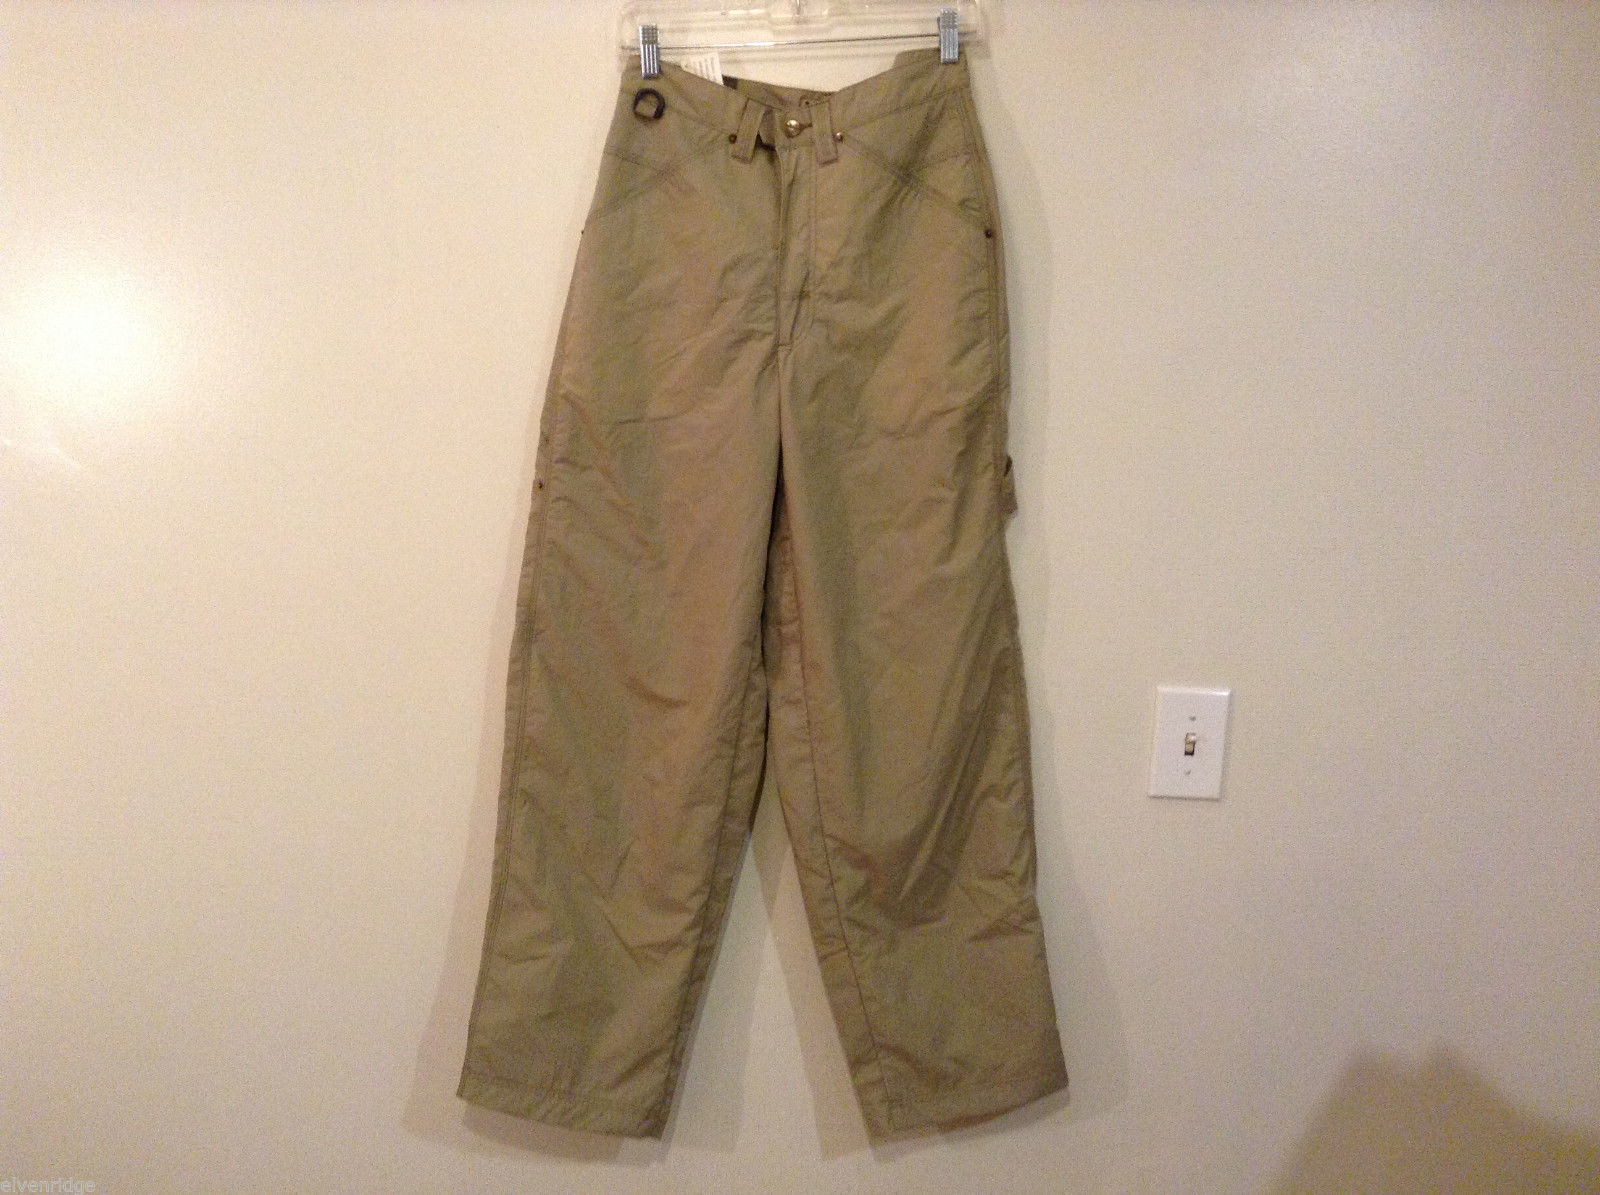 Mudd Water Resistant 100% nylon Olive Beige Sport Pants Fully Lined, size 29